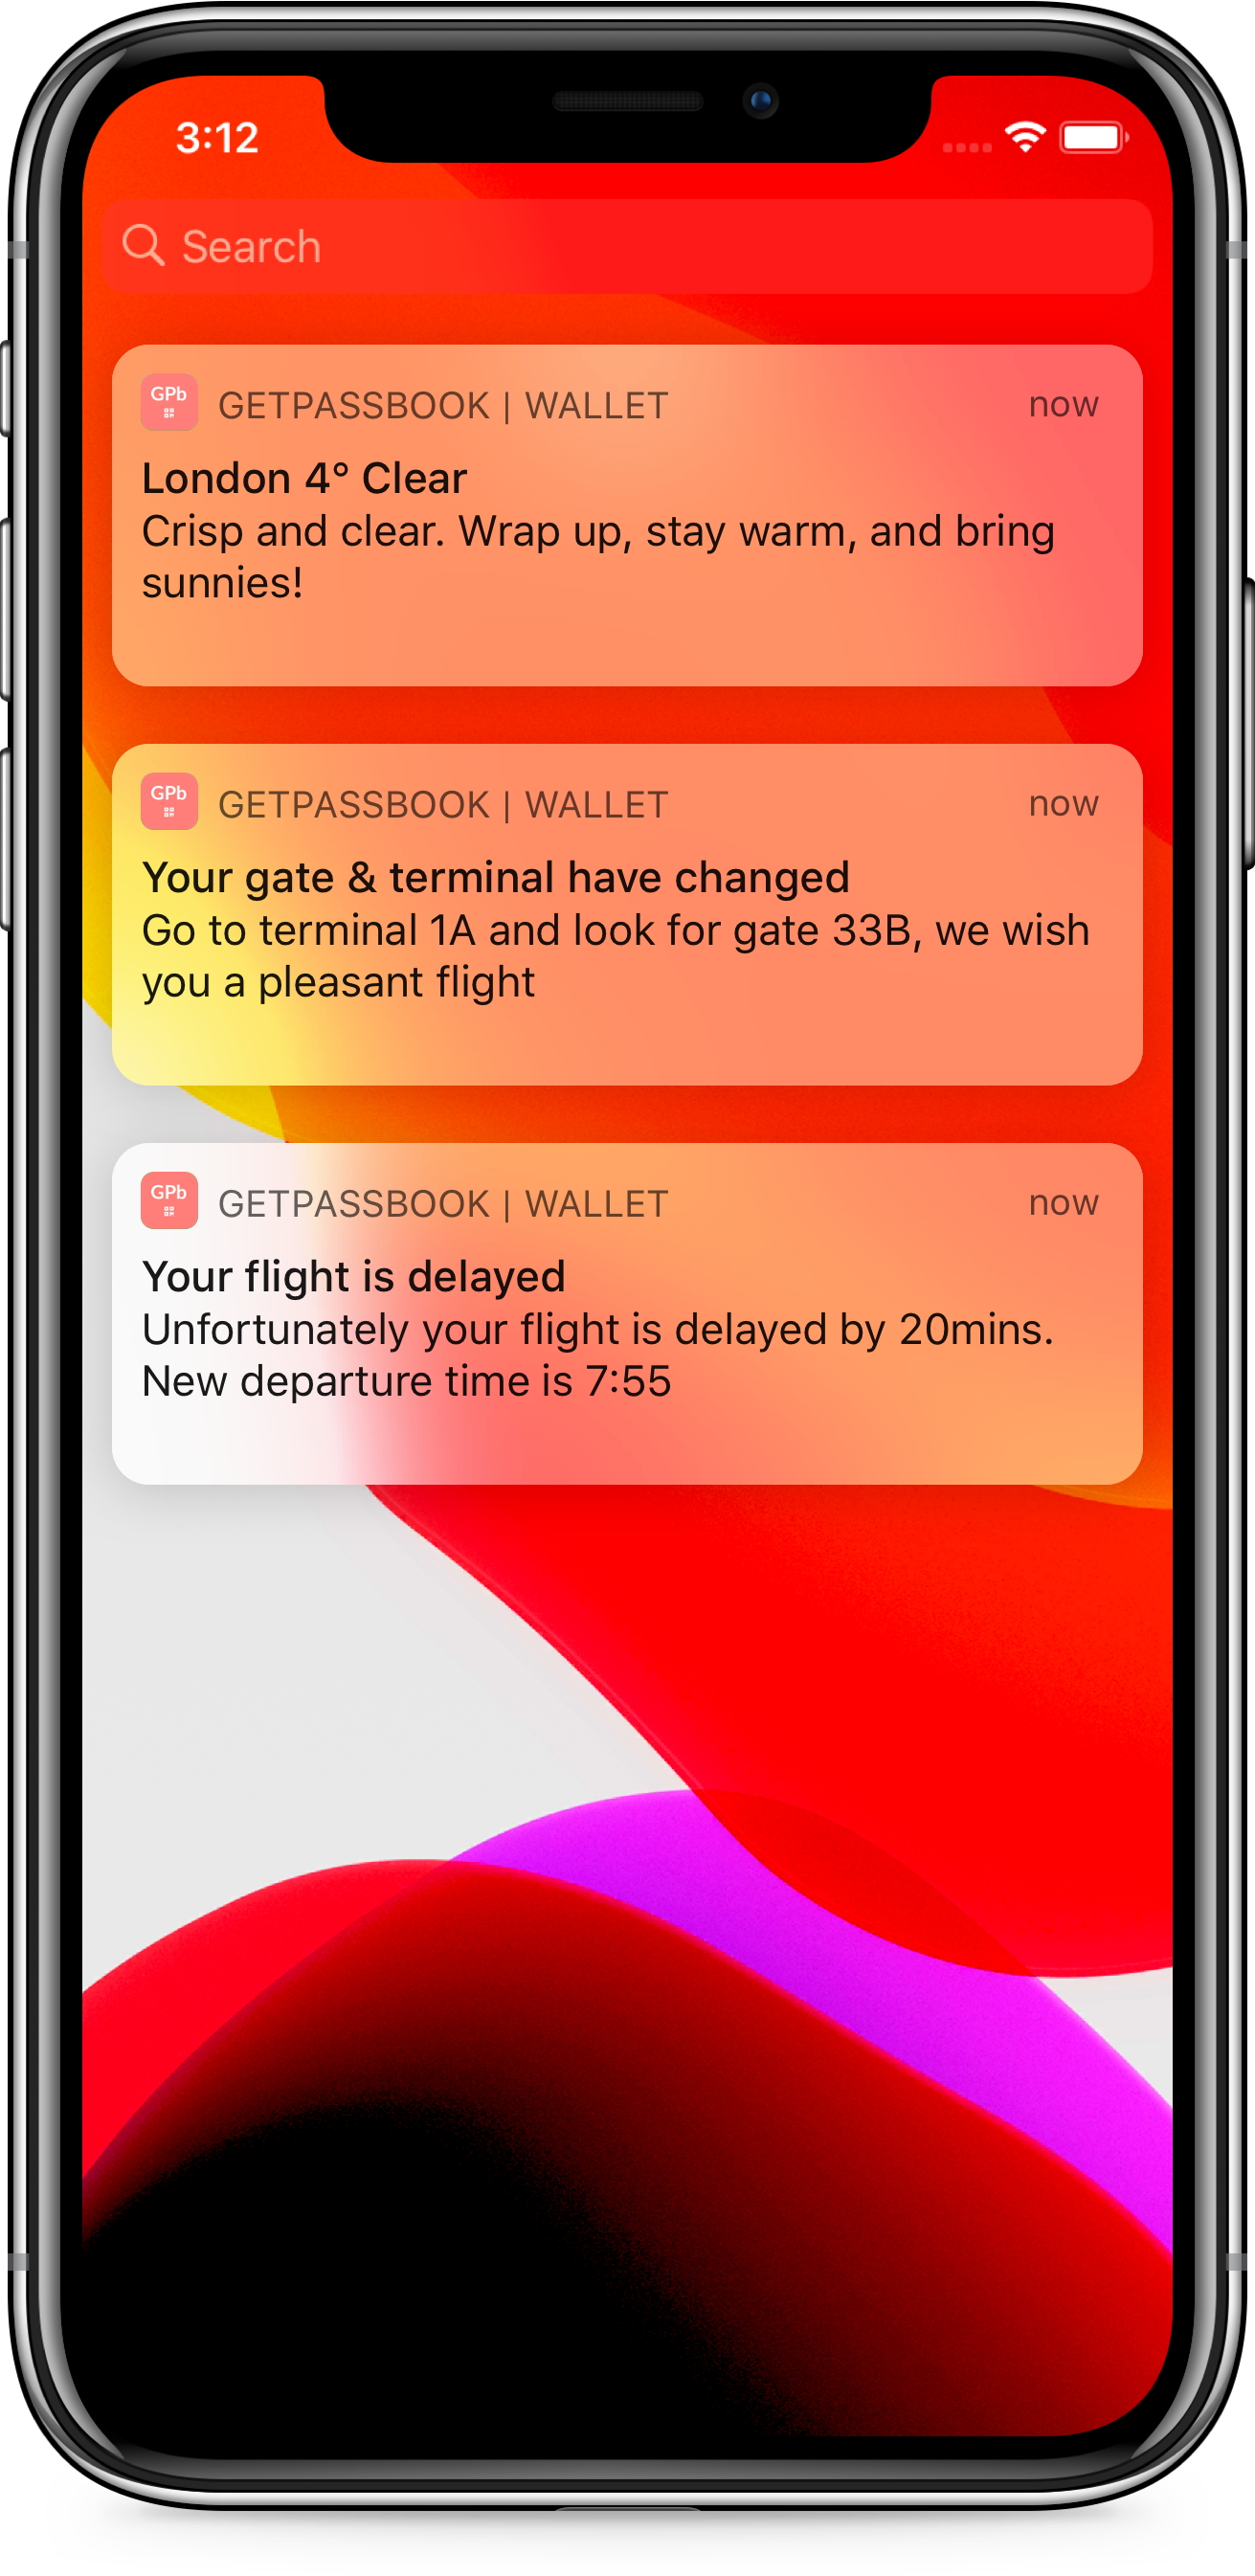 3. Don't get lost, just GetPassbook